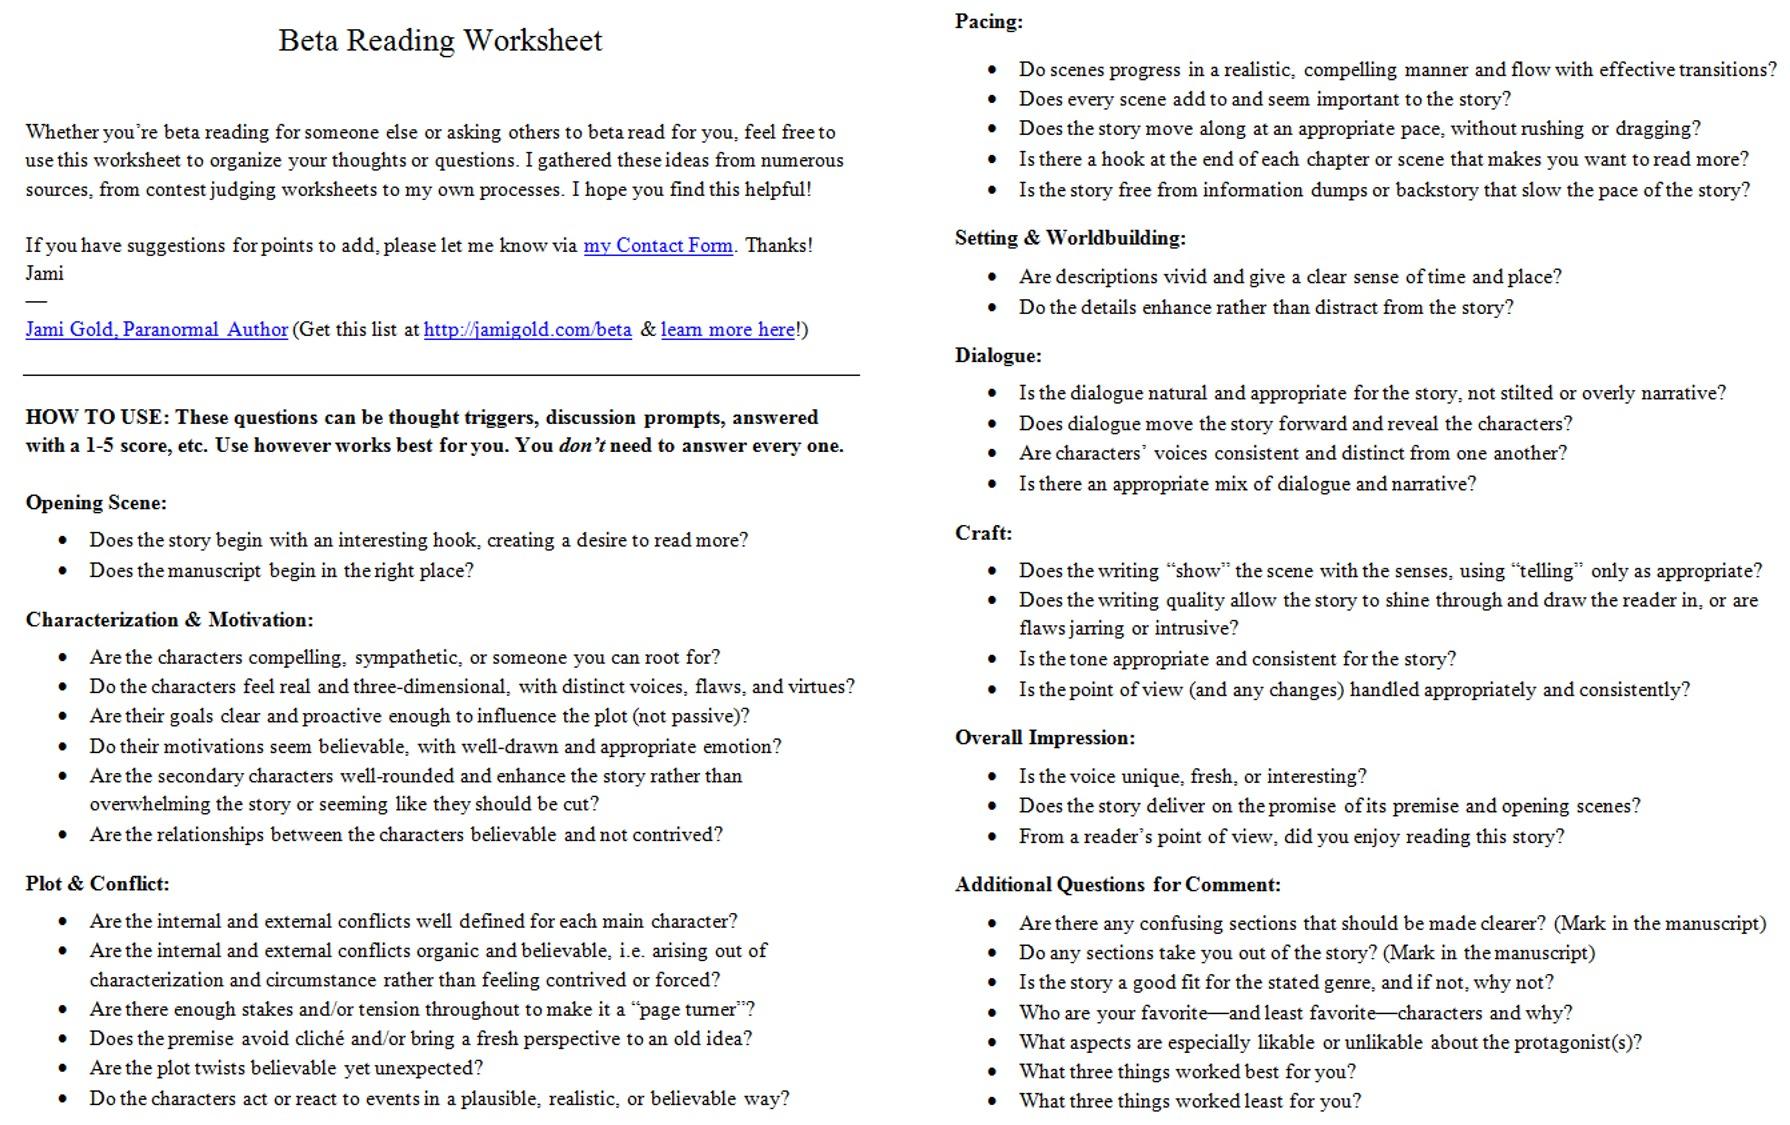 Proatmealus  Winning Worksheets For Writers  Jami Gold Paranormal Author With Remarkable Screen Shot Of The Twopage Beta Reading Worksheet With Breathtaking Grade  Literacy Worksheets Also Number Lines Worksheets Printable In Addition Verb To Be Worksheets For Kids And Grade  Geography Worksheets As Well As Frequency Polygon Worksheet Additionally Winter Vocabulary Worksheets From Jamigoldcom With Proatmealus  Remarkable Worksheets For Writers  Jami Gold Paranormal Author With Breathtaking Screen Shot Of The Twopage Beta Reading Worksheet And Winning Grade  Literacy Worksheets Also Number Lines Worksheets Printable In Addition Verb To Be Worksheets For Kids From Jamigoldcom